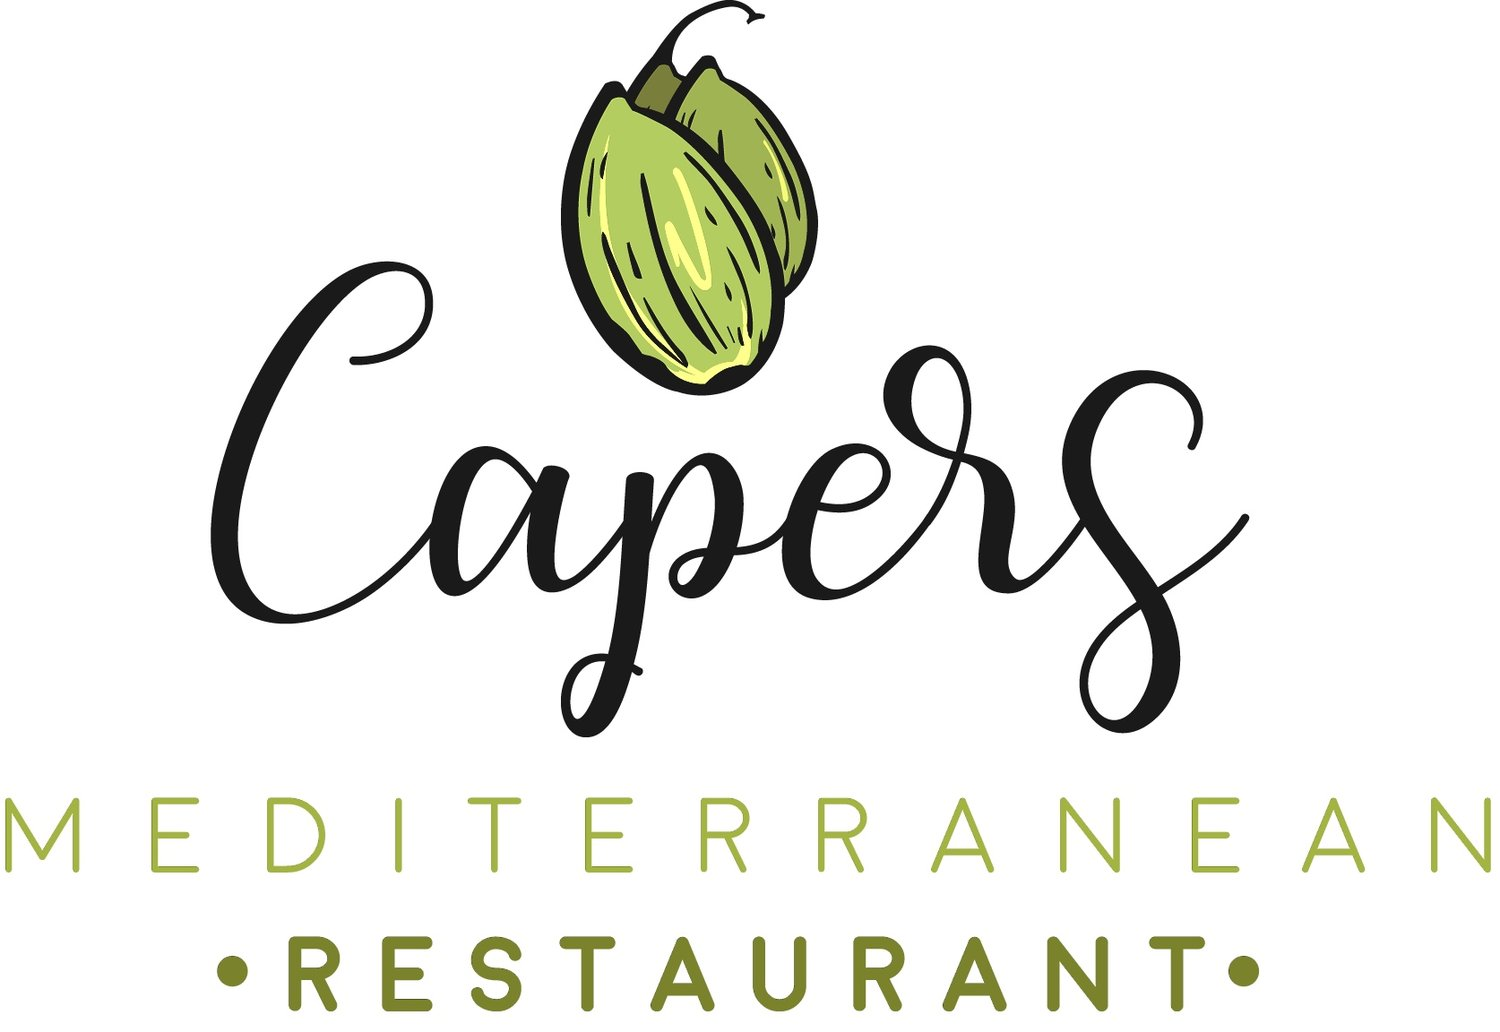 Capers Restaurant.